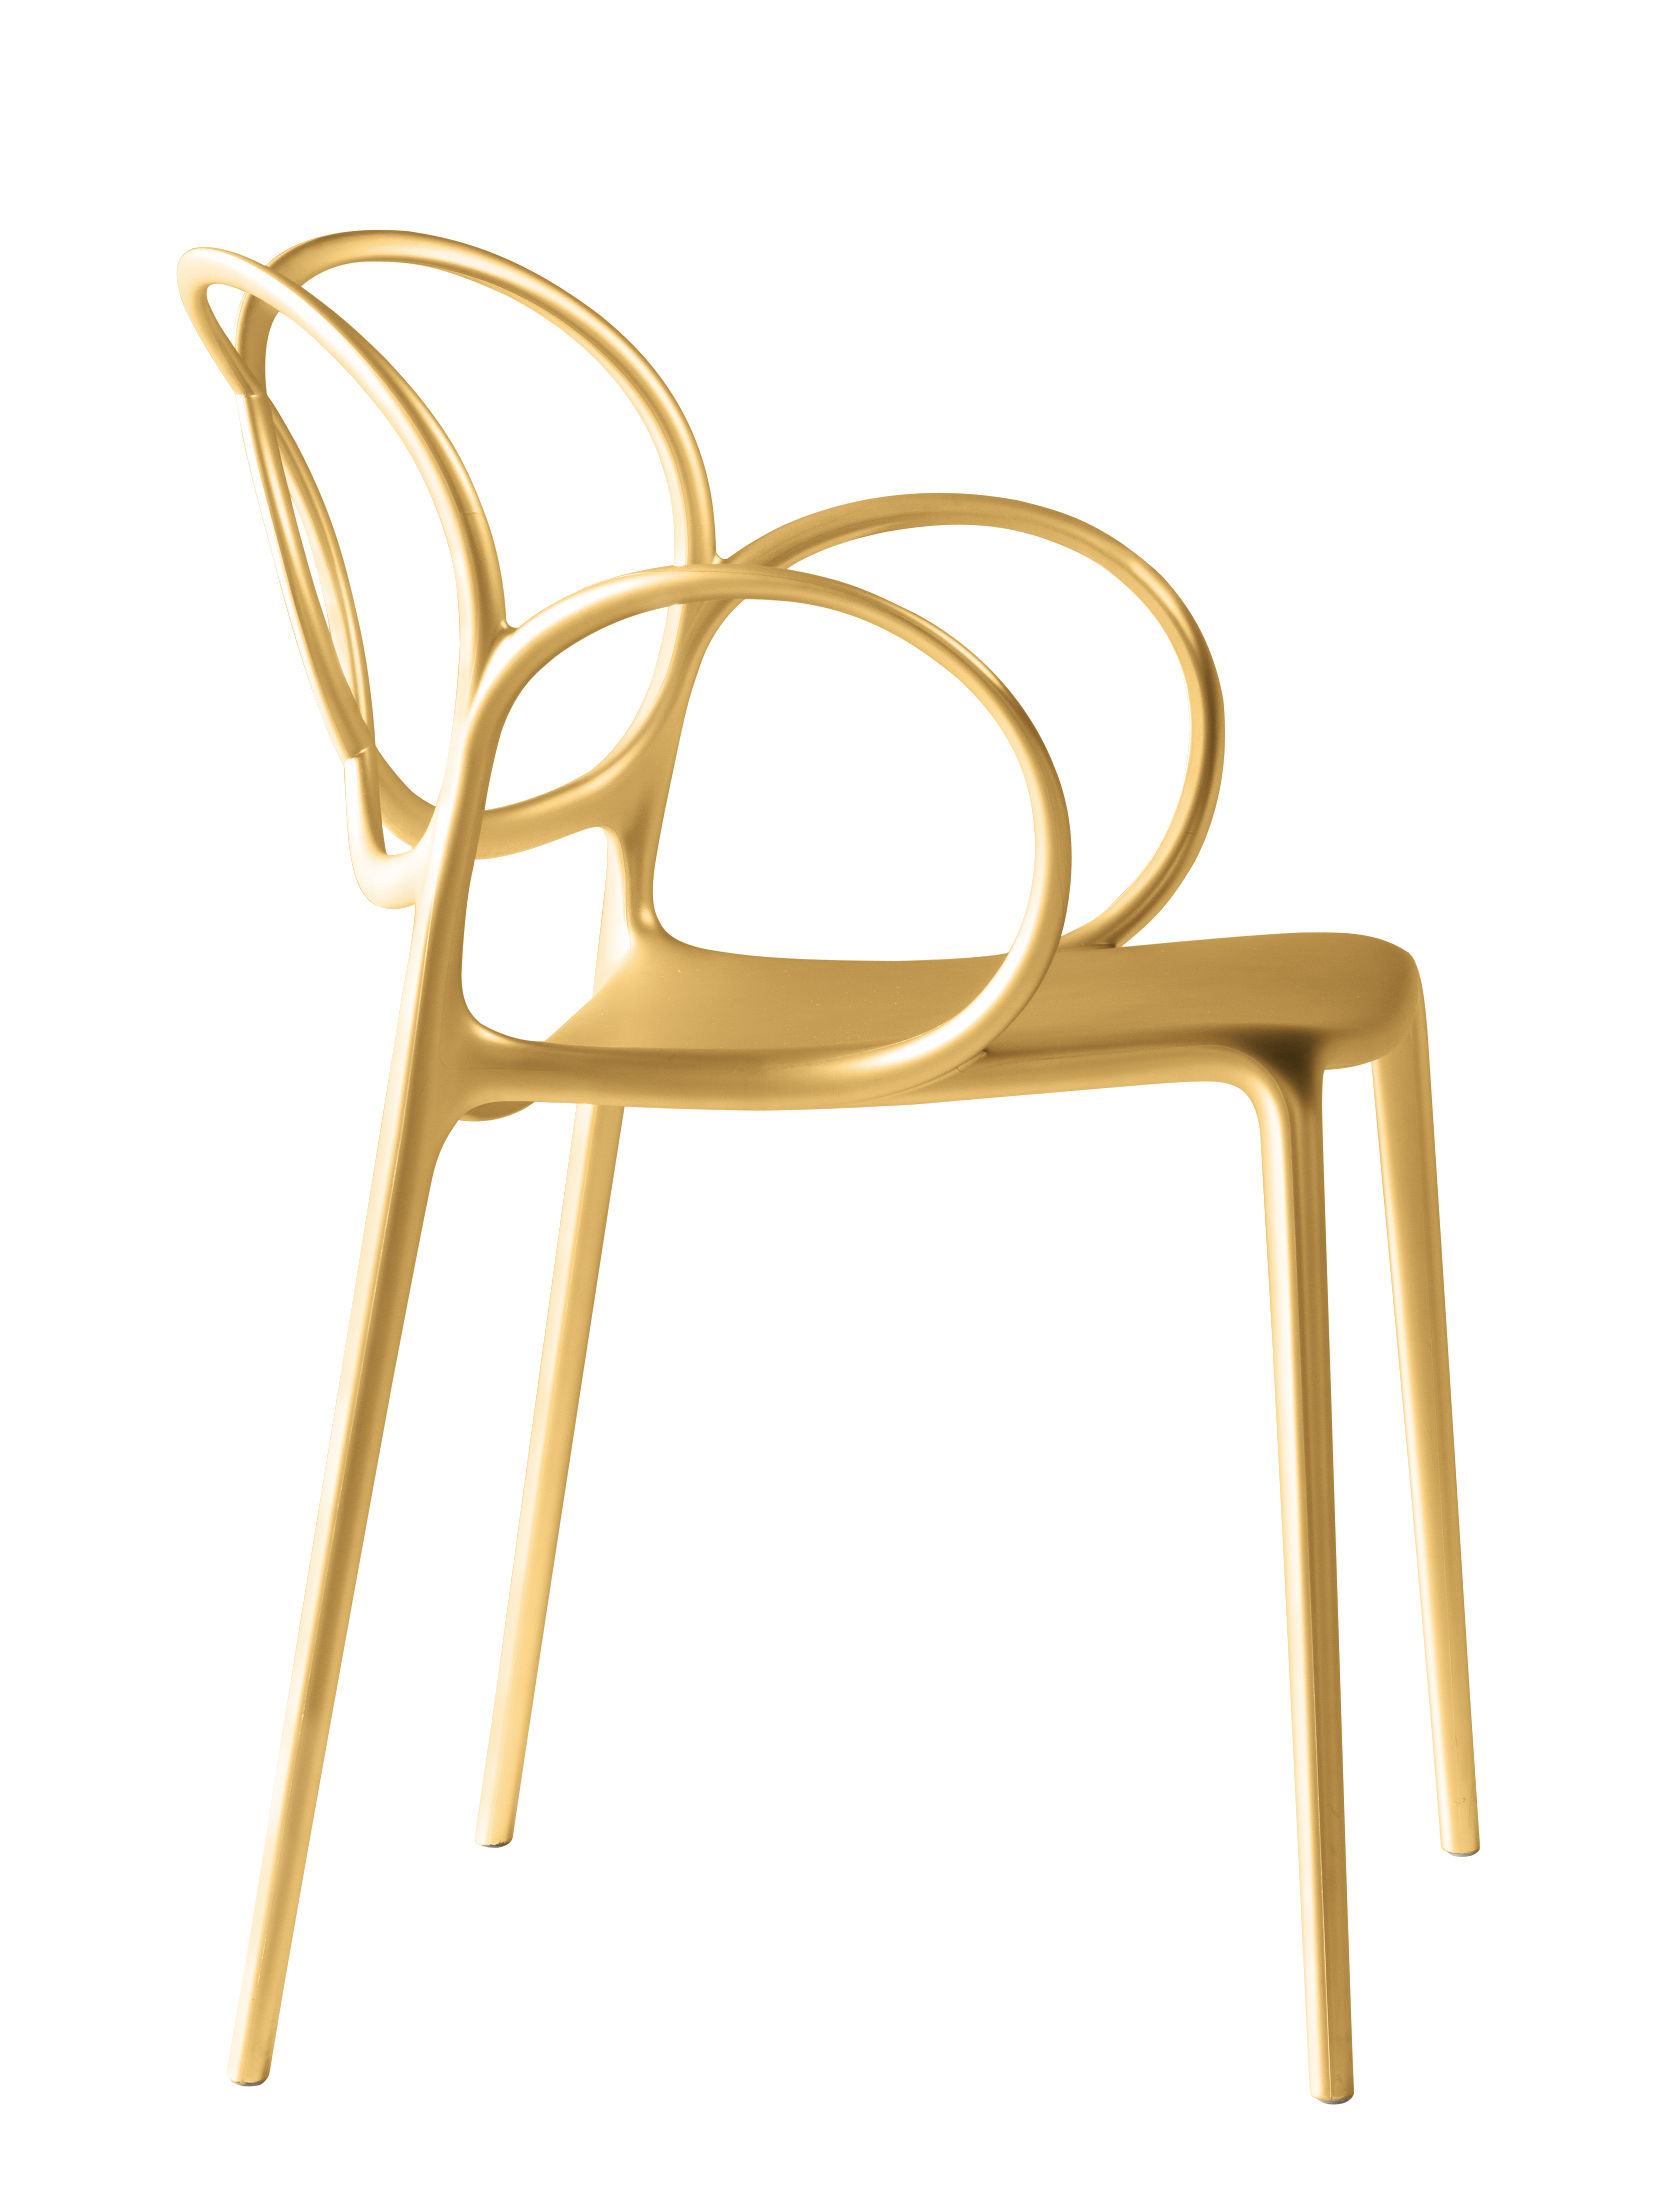 Furniture - Chairs - Sissi Stackable armchair - Indoor by Driade - Gold - Fibreglass, Polypropylene, Polythene